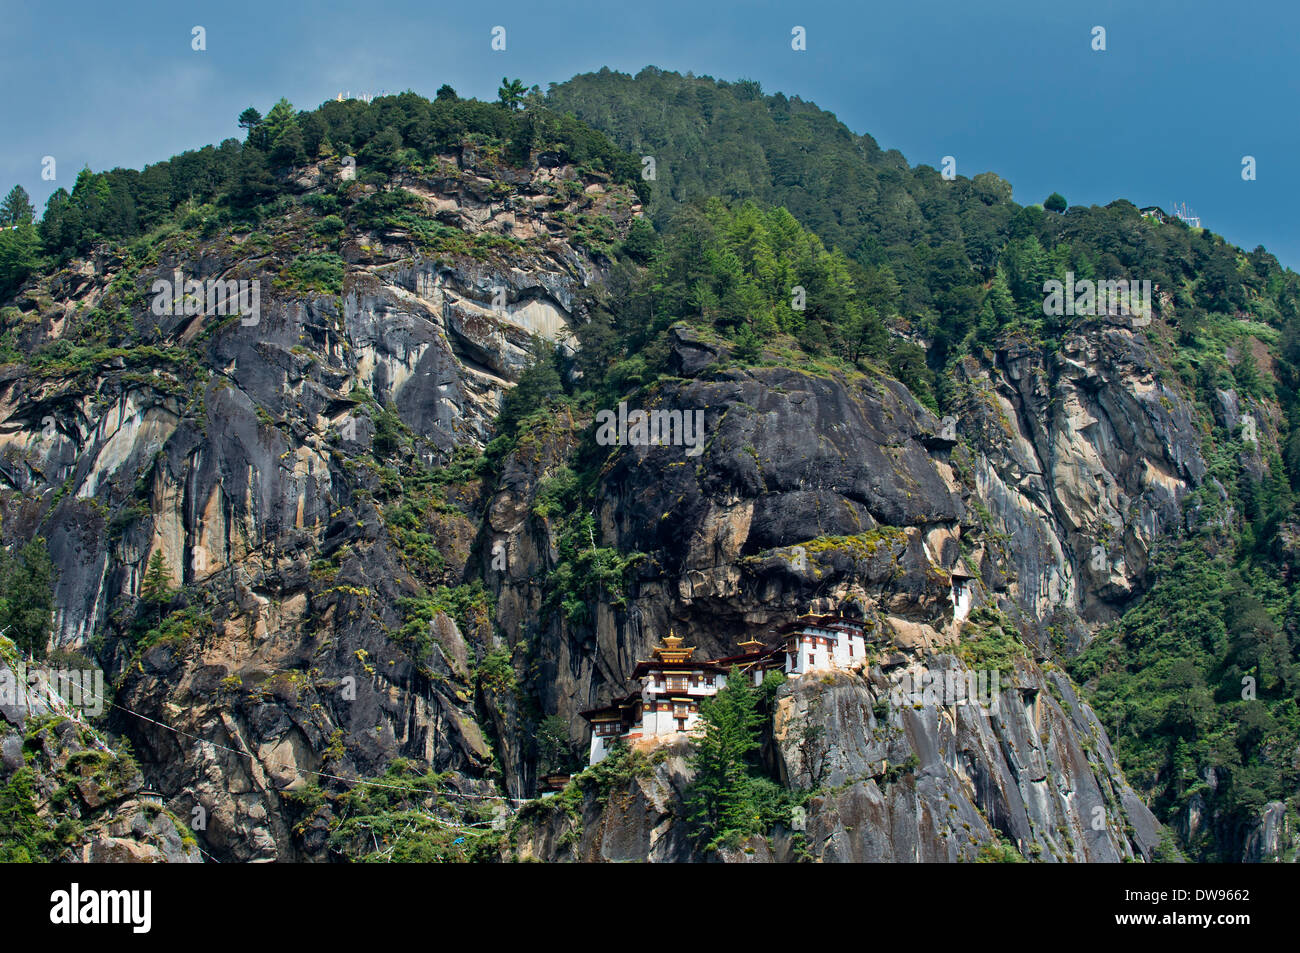 Rock face with the Taktsang Palphug Monastery or Tiger's Nest, Taktshang, Bhutan - Stock Image